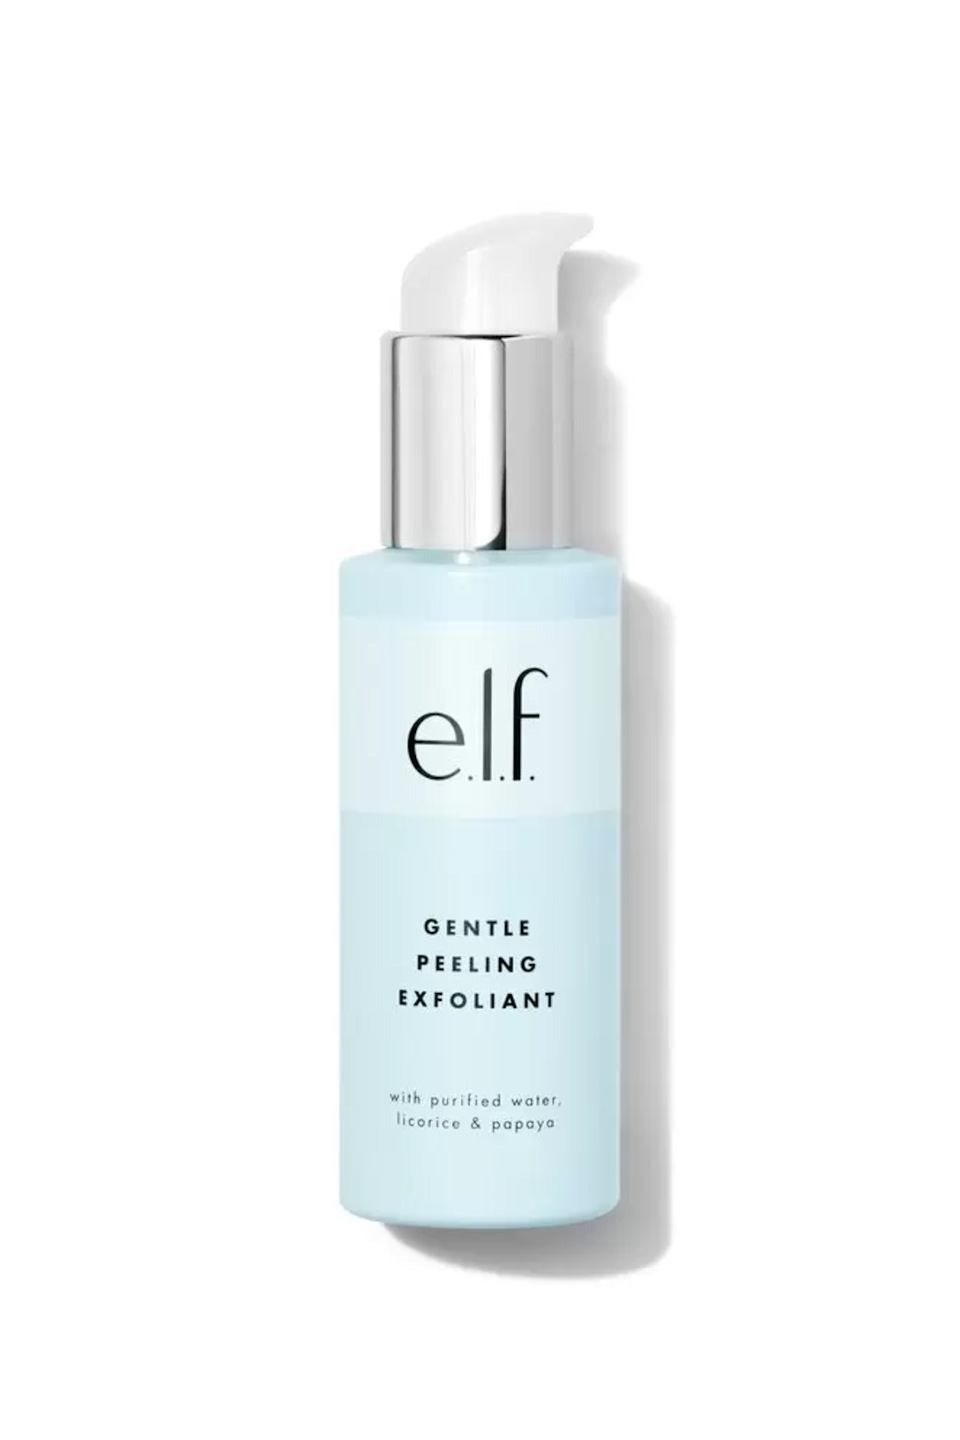 """<p><strong>e.l.f. Cosmetics</strong></p><p>ulta.com</p><p><strong>$10.00</strong></p><p><a href=""""https://go.redirectingat.com?id=74968X1596630&url=https%3A%2F%2Fwww.ulta.com%2Fp%2Fgentle-peeling-exfoliant-xlsImpprod16691005&sref=https%3A%2F%2Fwww.seventeen.com%2Fbeauty%2Fmakeup-skincare%2Fg36866431%2Fbest-elf-makeup-skincare-products%2F"""" rel=""""nofollow noopener"""" target=""""_blank"""" data-ylk=""""slk:Shop Now"""" class=""""link rapid-noclick-resp"""">Shop Now</a></p><p>Over the years, E.L.F. has seriously stepped up its skincare game. The Gentle Peeling Exfoliant starts out as a clear gel but turns into small exfoliating balls after you rub it onto your skin. This is because it picks up dead skin cells and leftover products, and I will say that it is totally satisfying.</p>"""